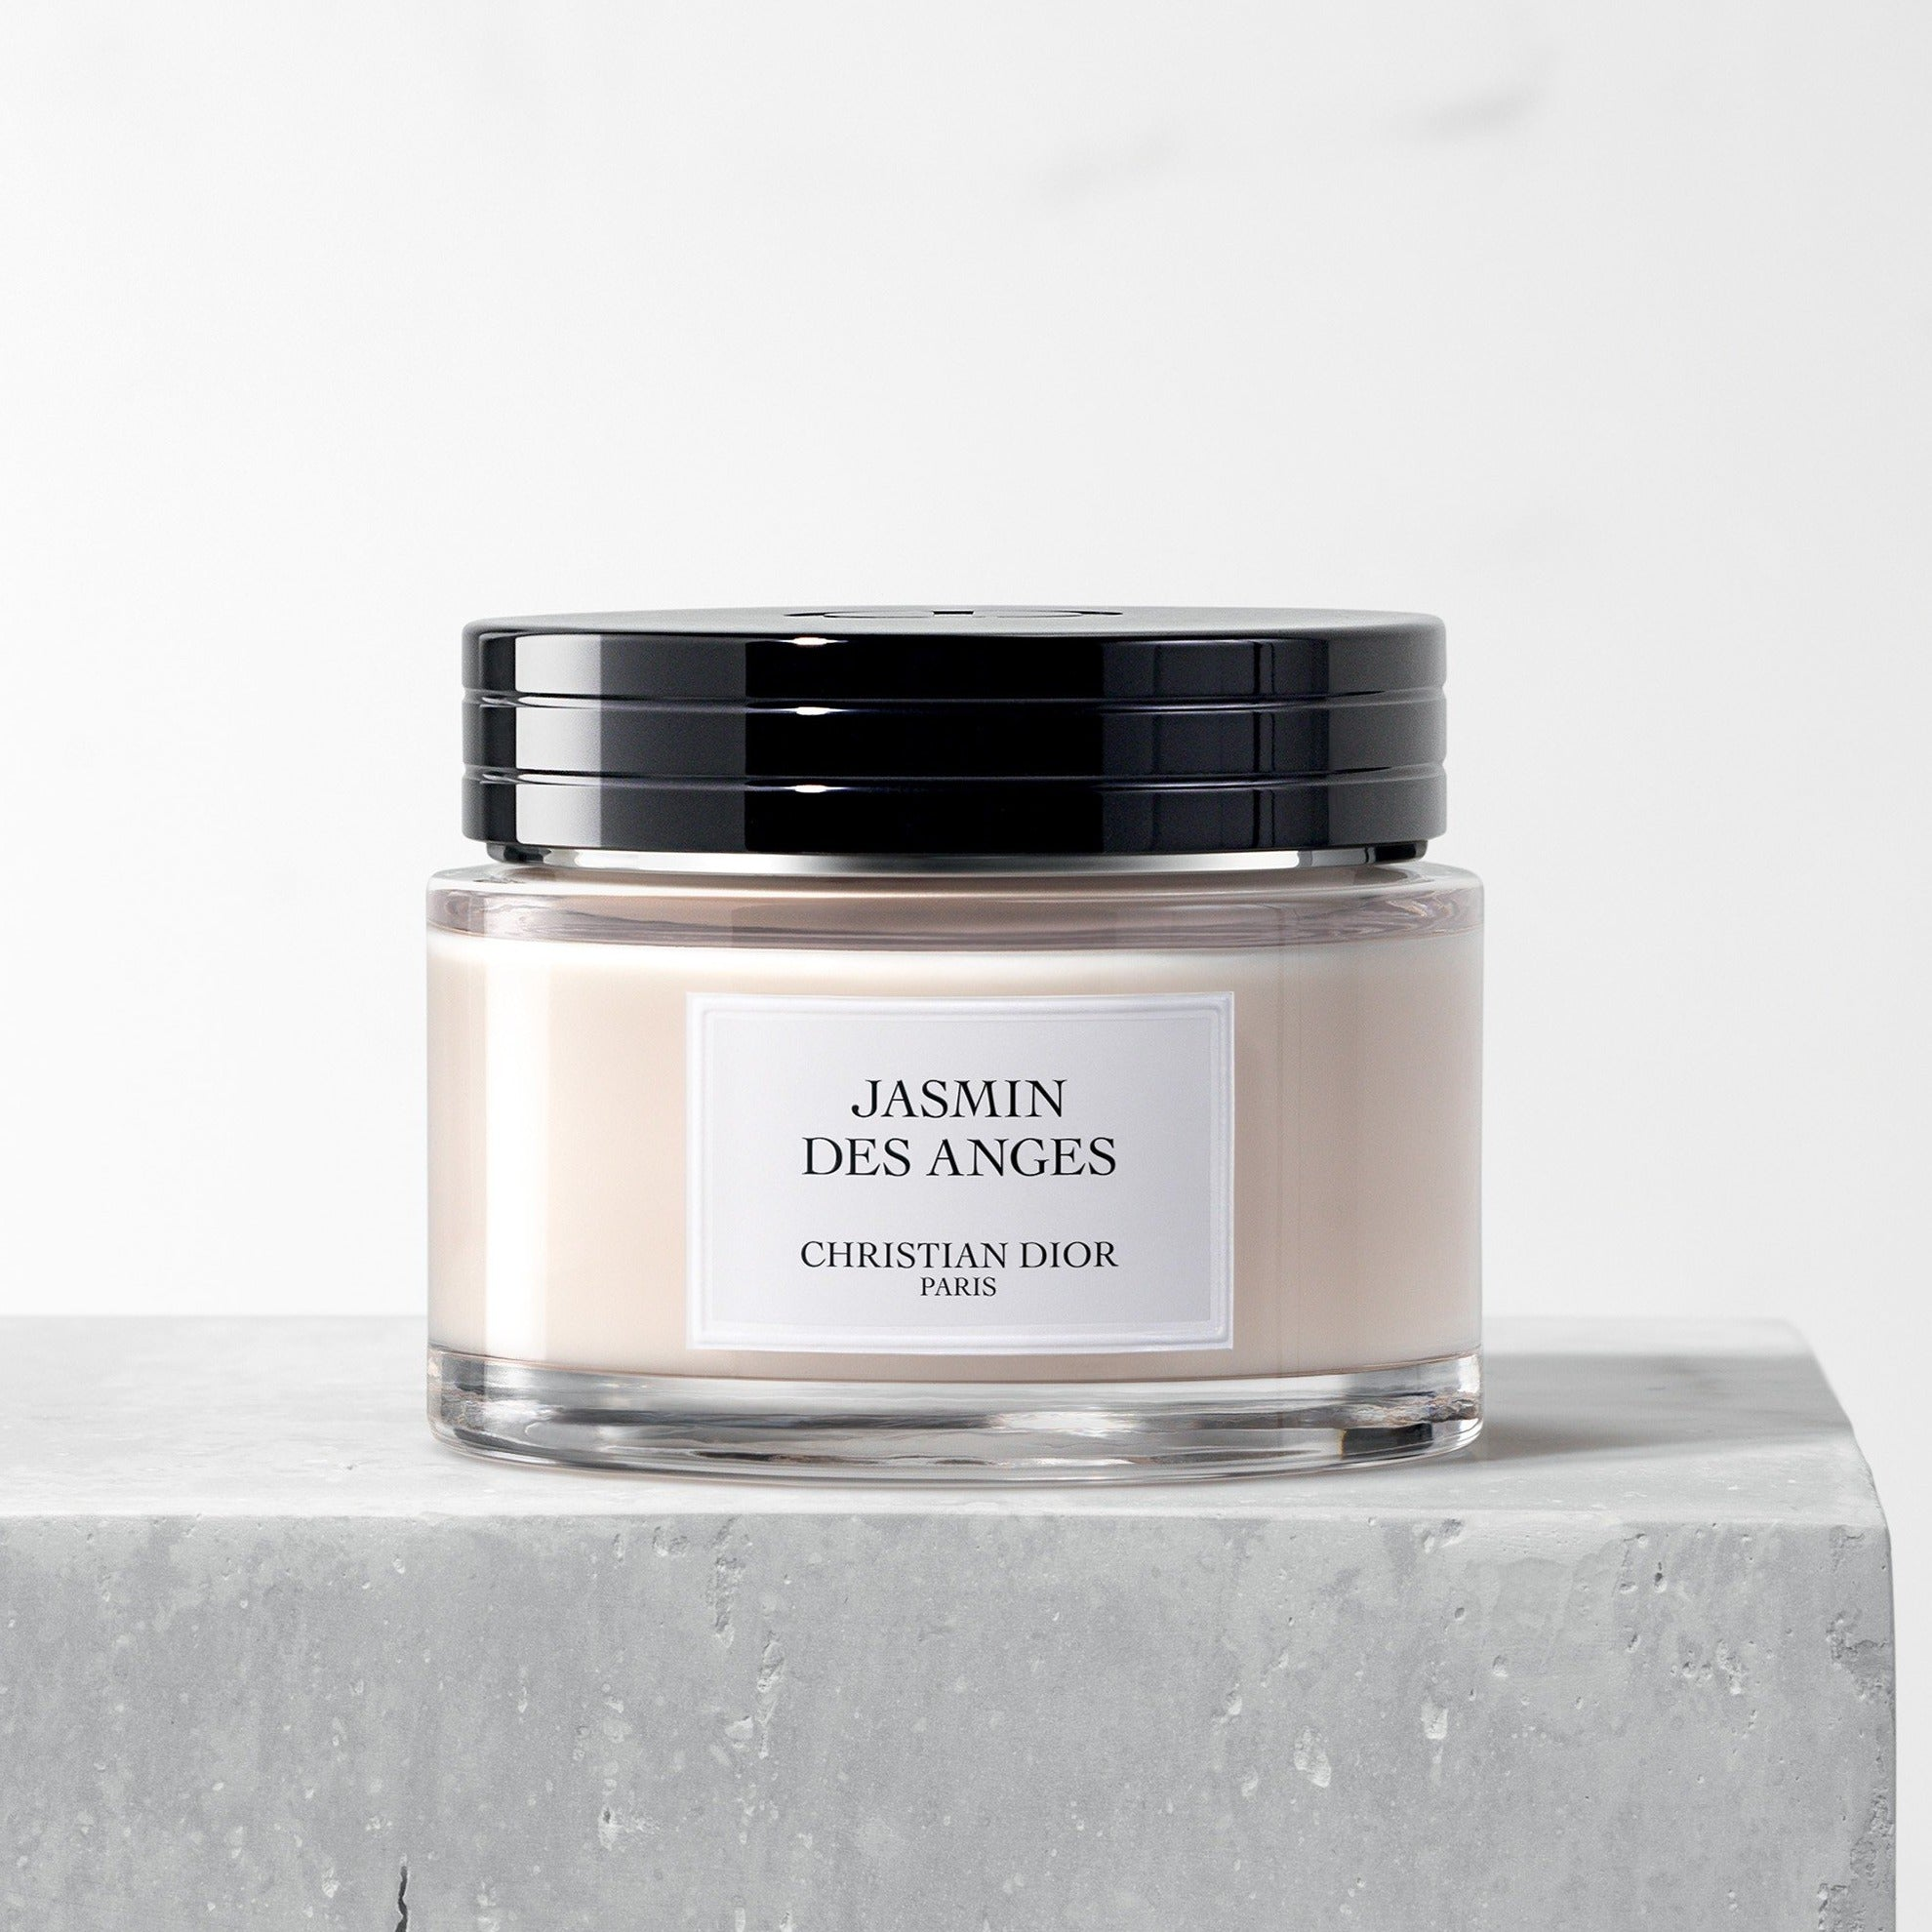 JASMIN DES ANGES | Body Cream